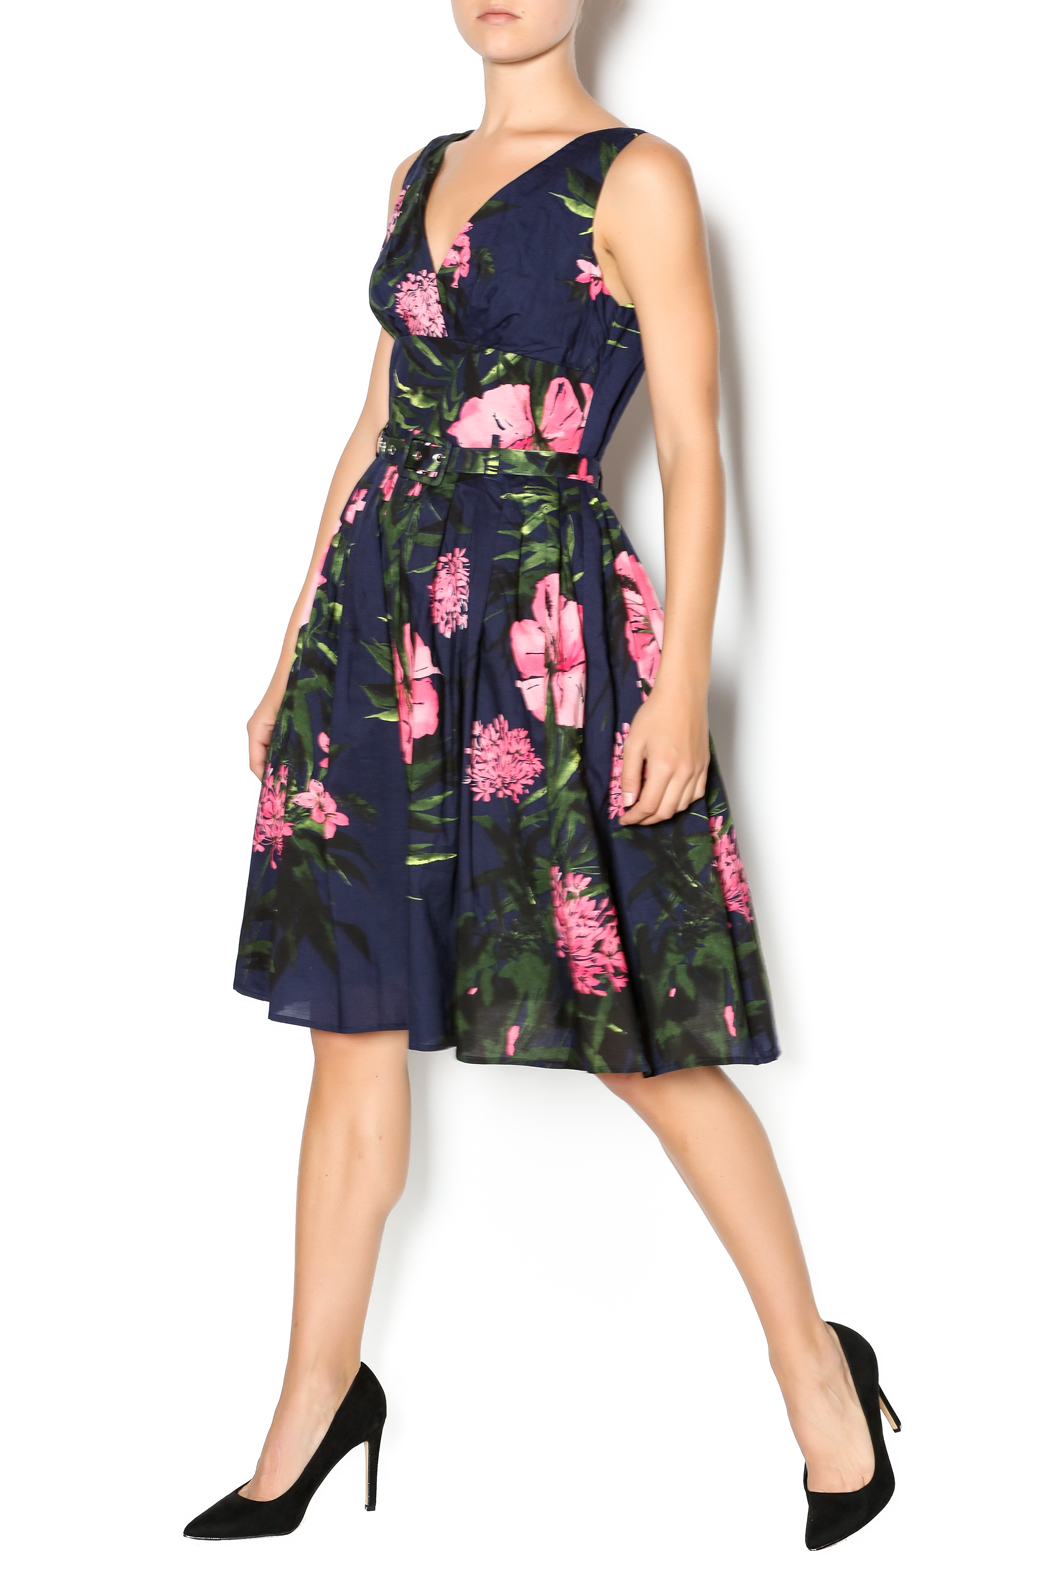 Aryeh Navy And Pink Floral Dress - Main Image